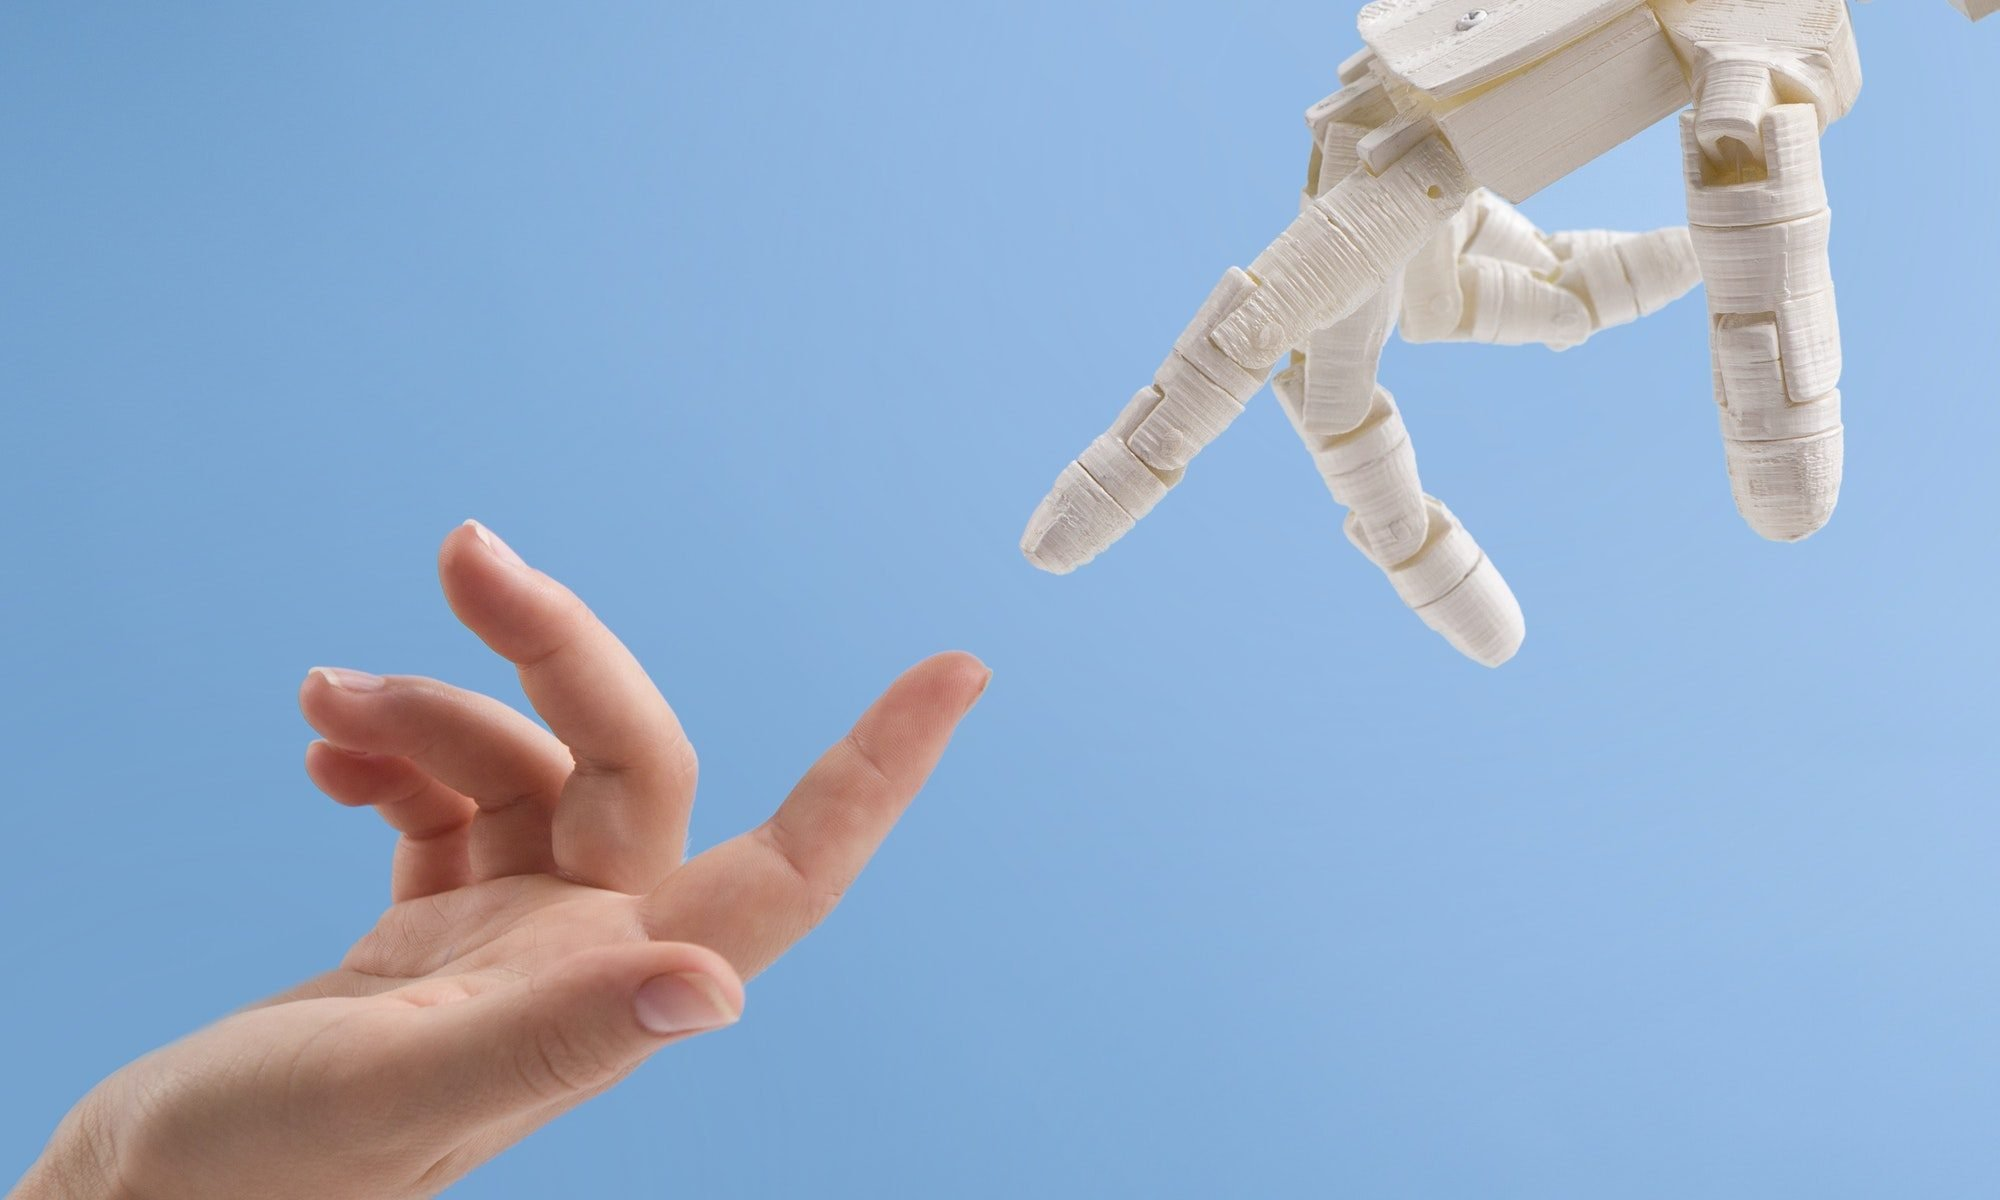 Female and robot hands reaching to each other on blue background